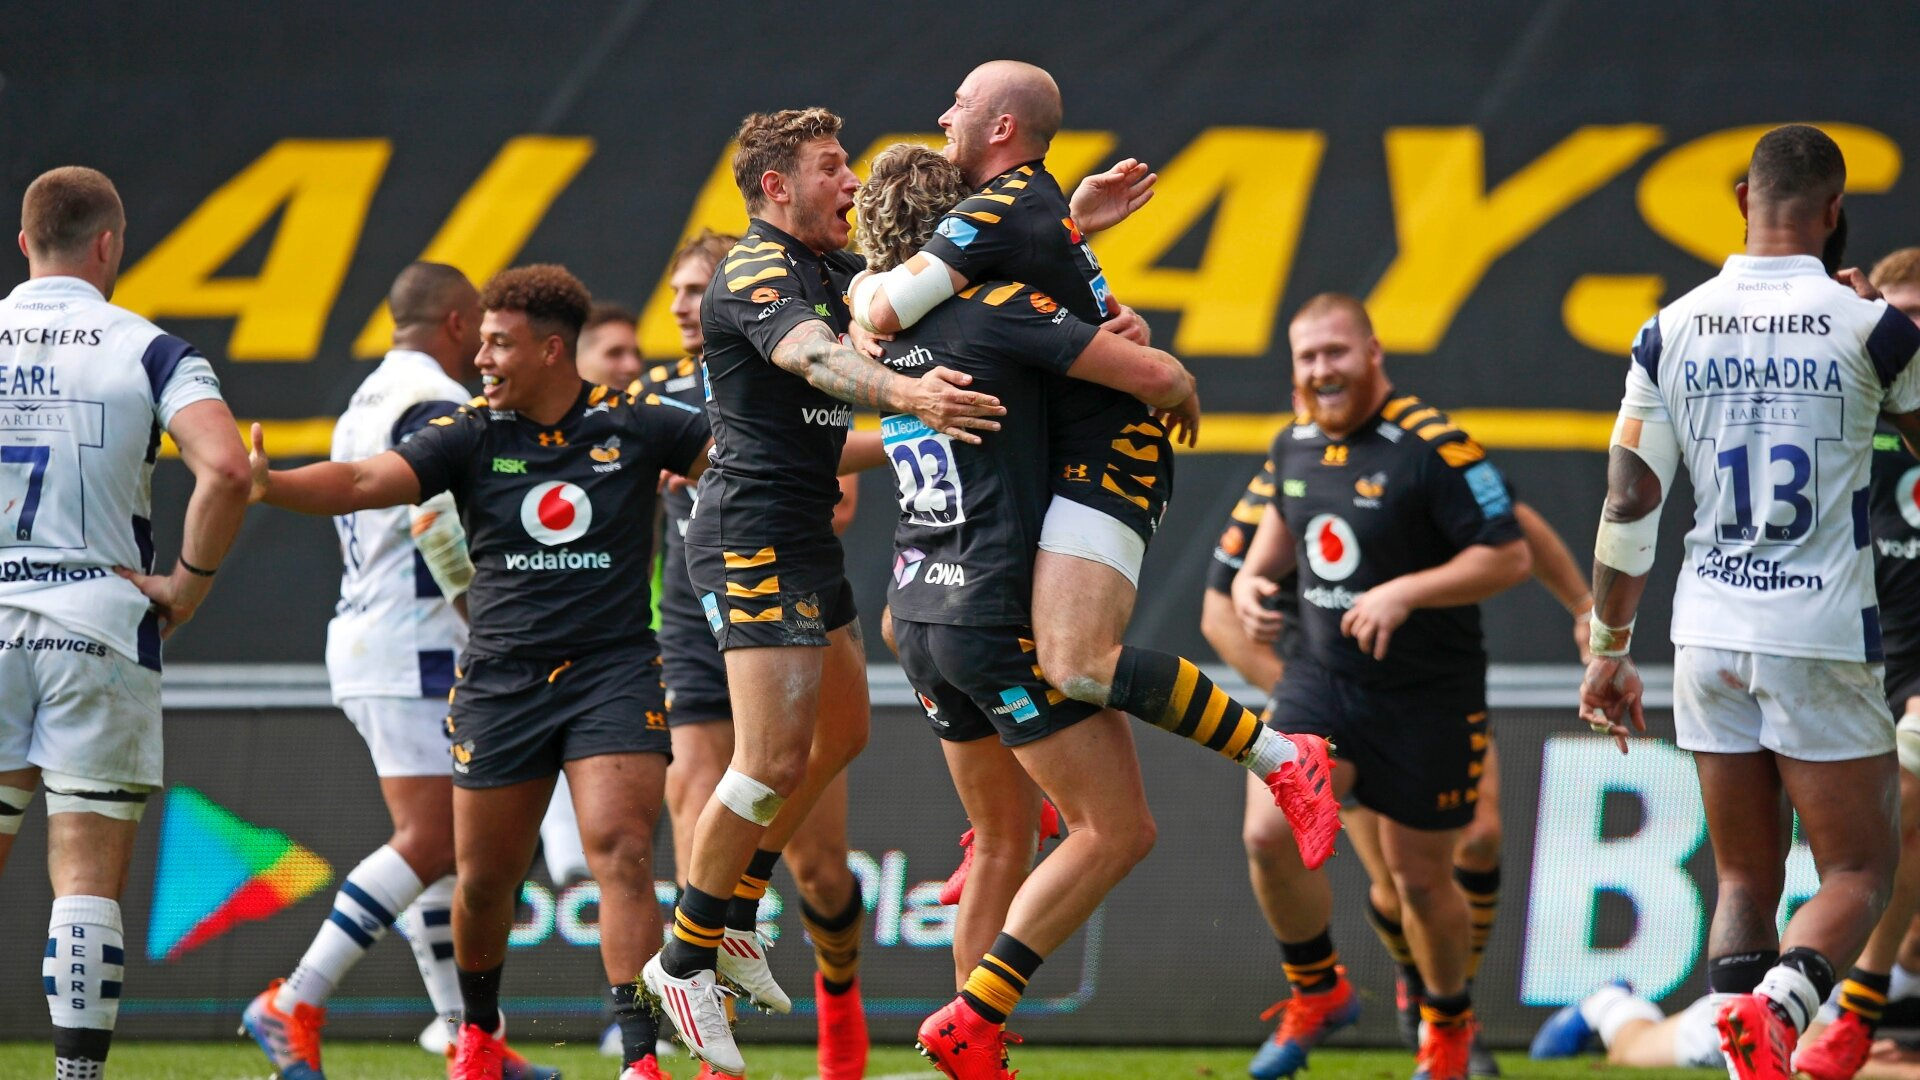 4 Wasps players test positive for Covid along with 3 staff